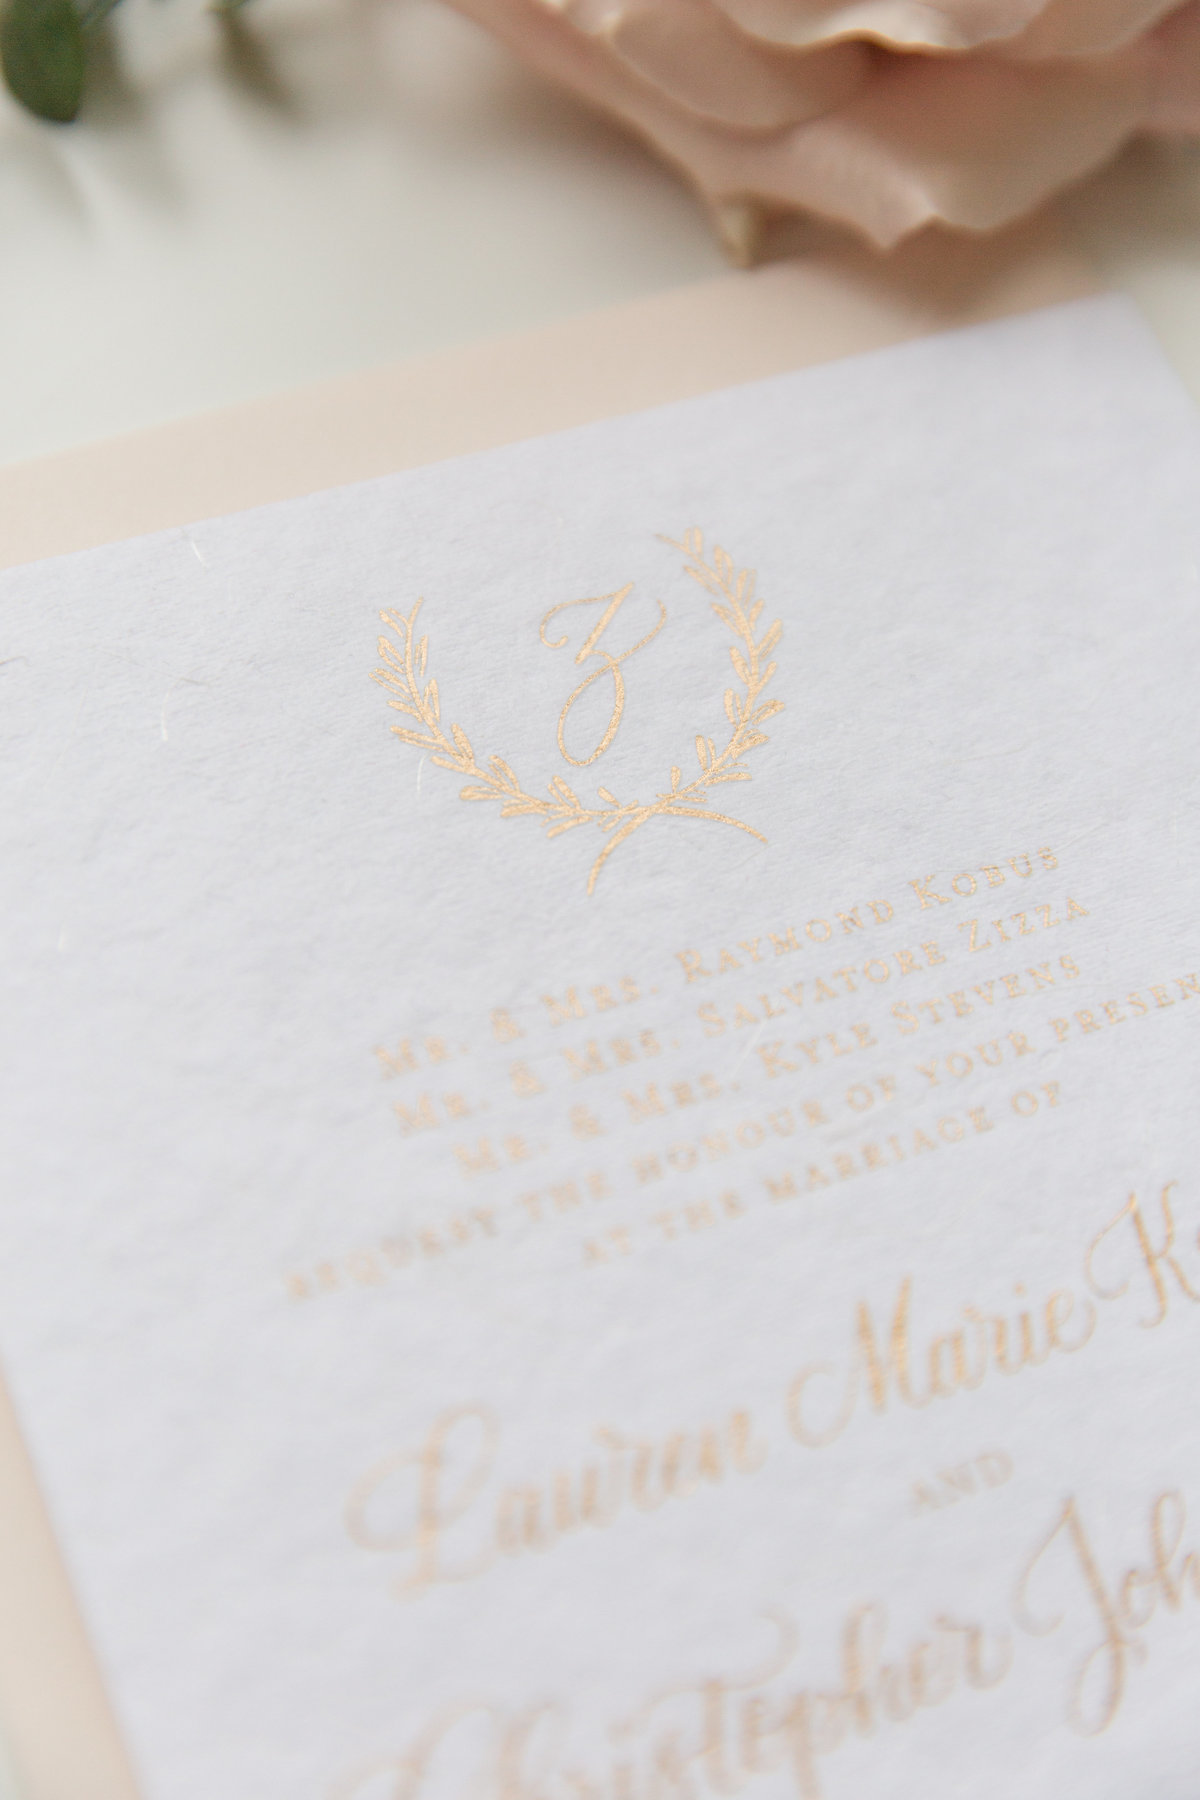 Lewes Lettering co gold ink calligraphy on white paper